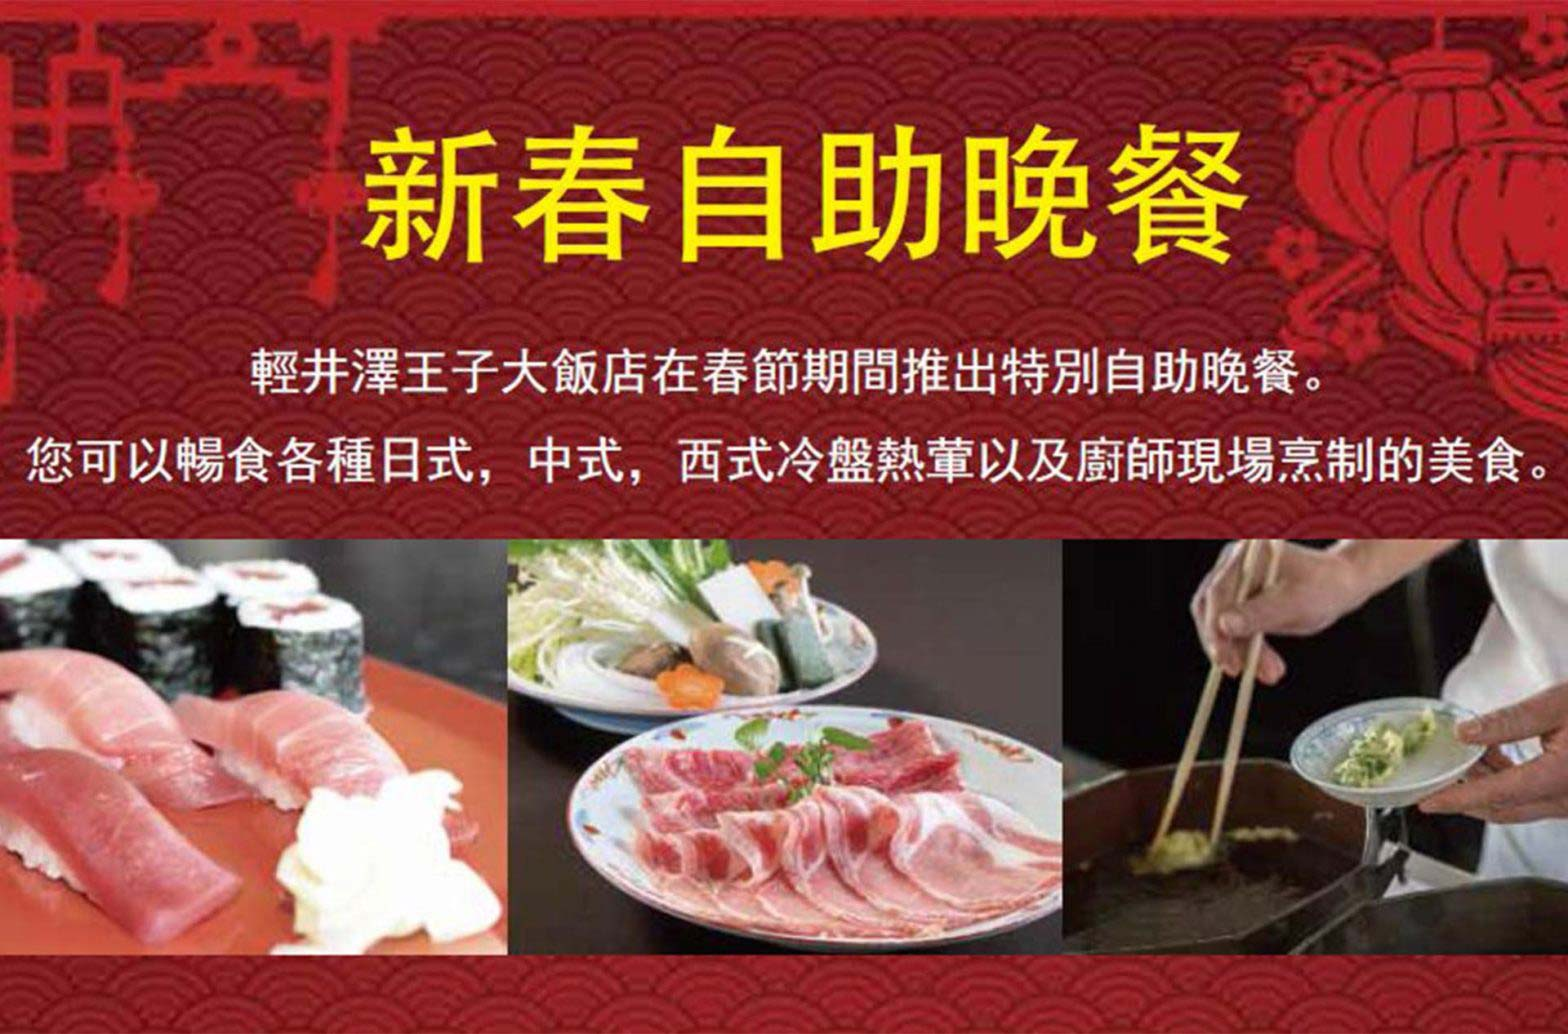 Special buffet dinner during Lunar New Year!